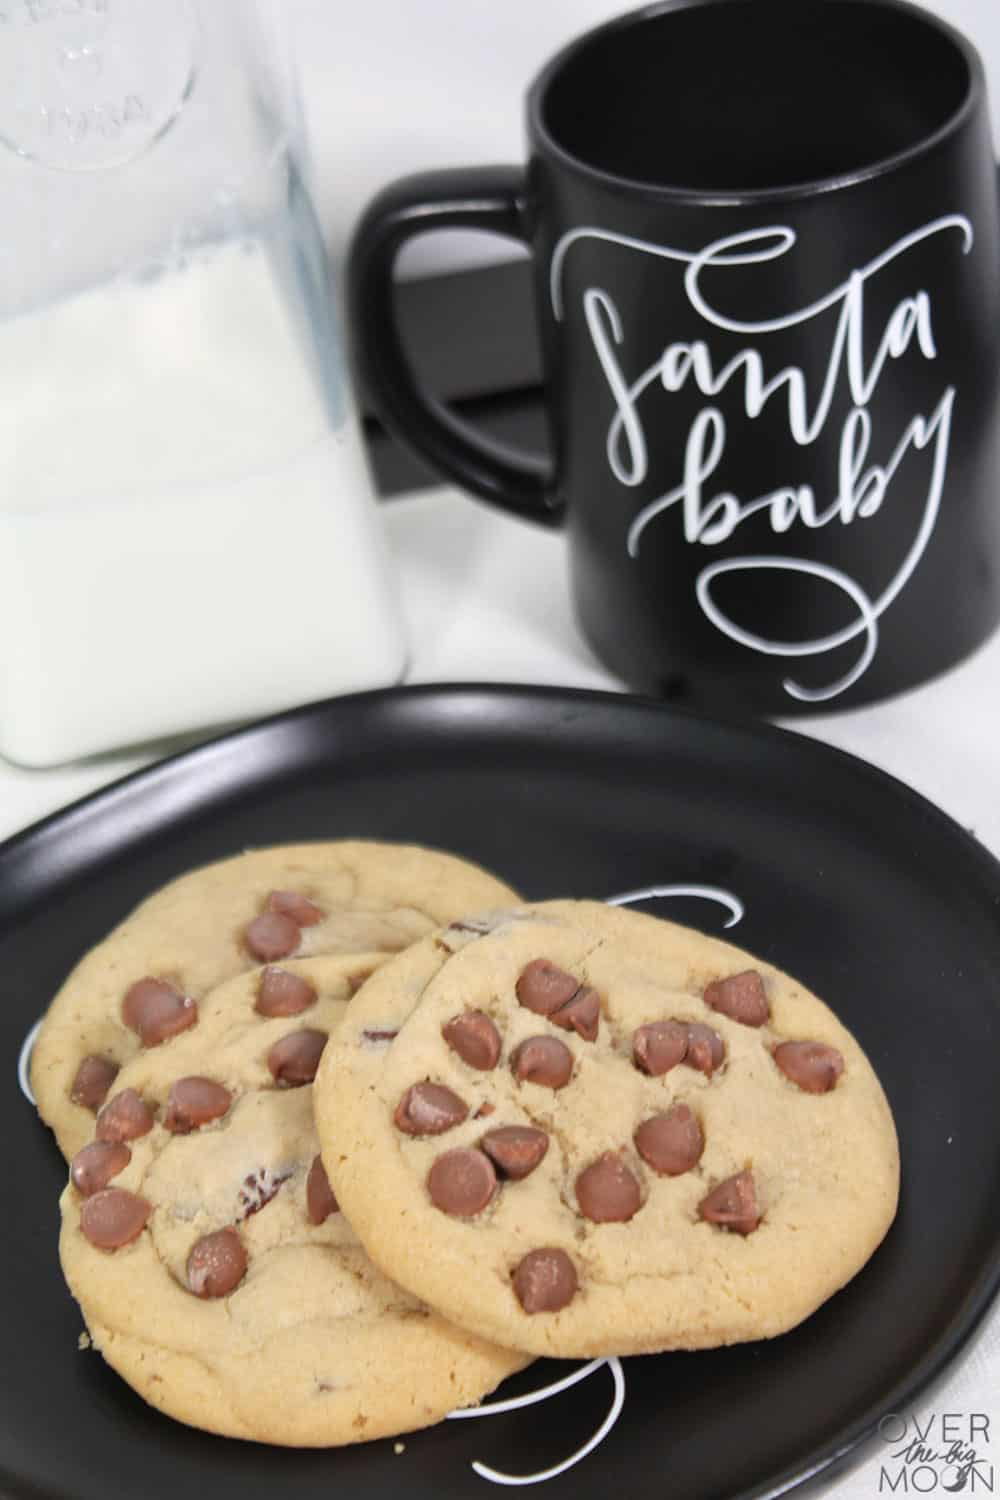 The milk and cookies for Santa never looked so good! Check out this fun DIY! From overthebigmoon.com!